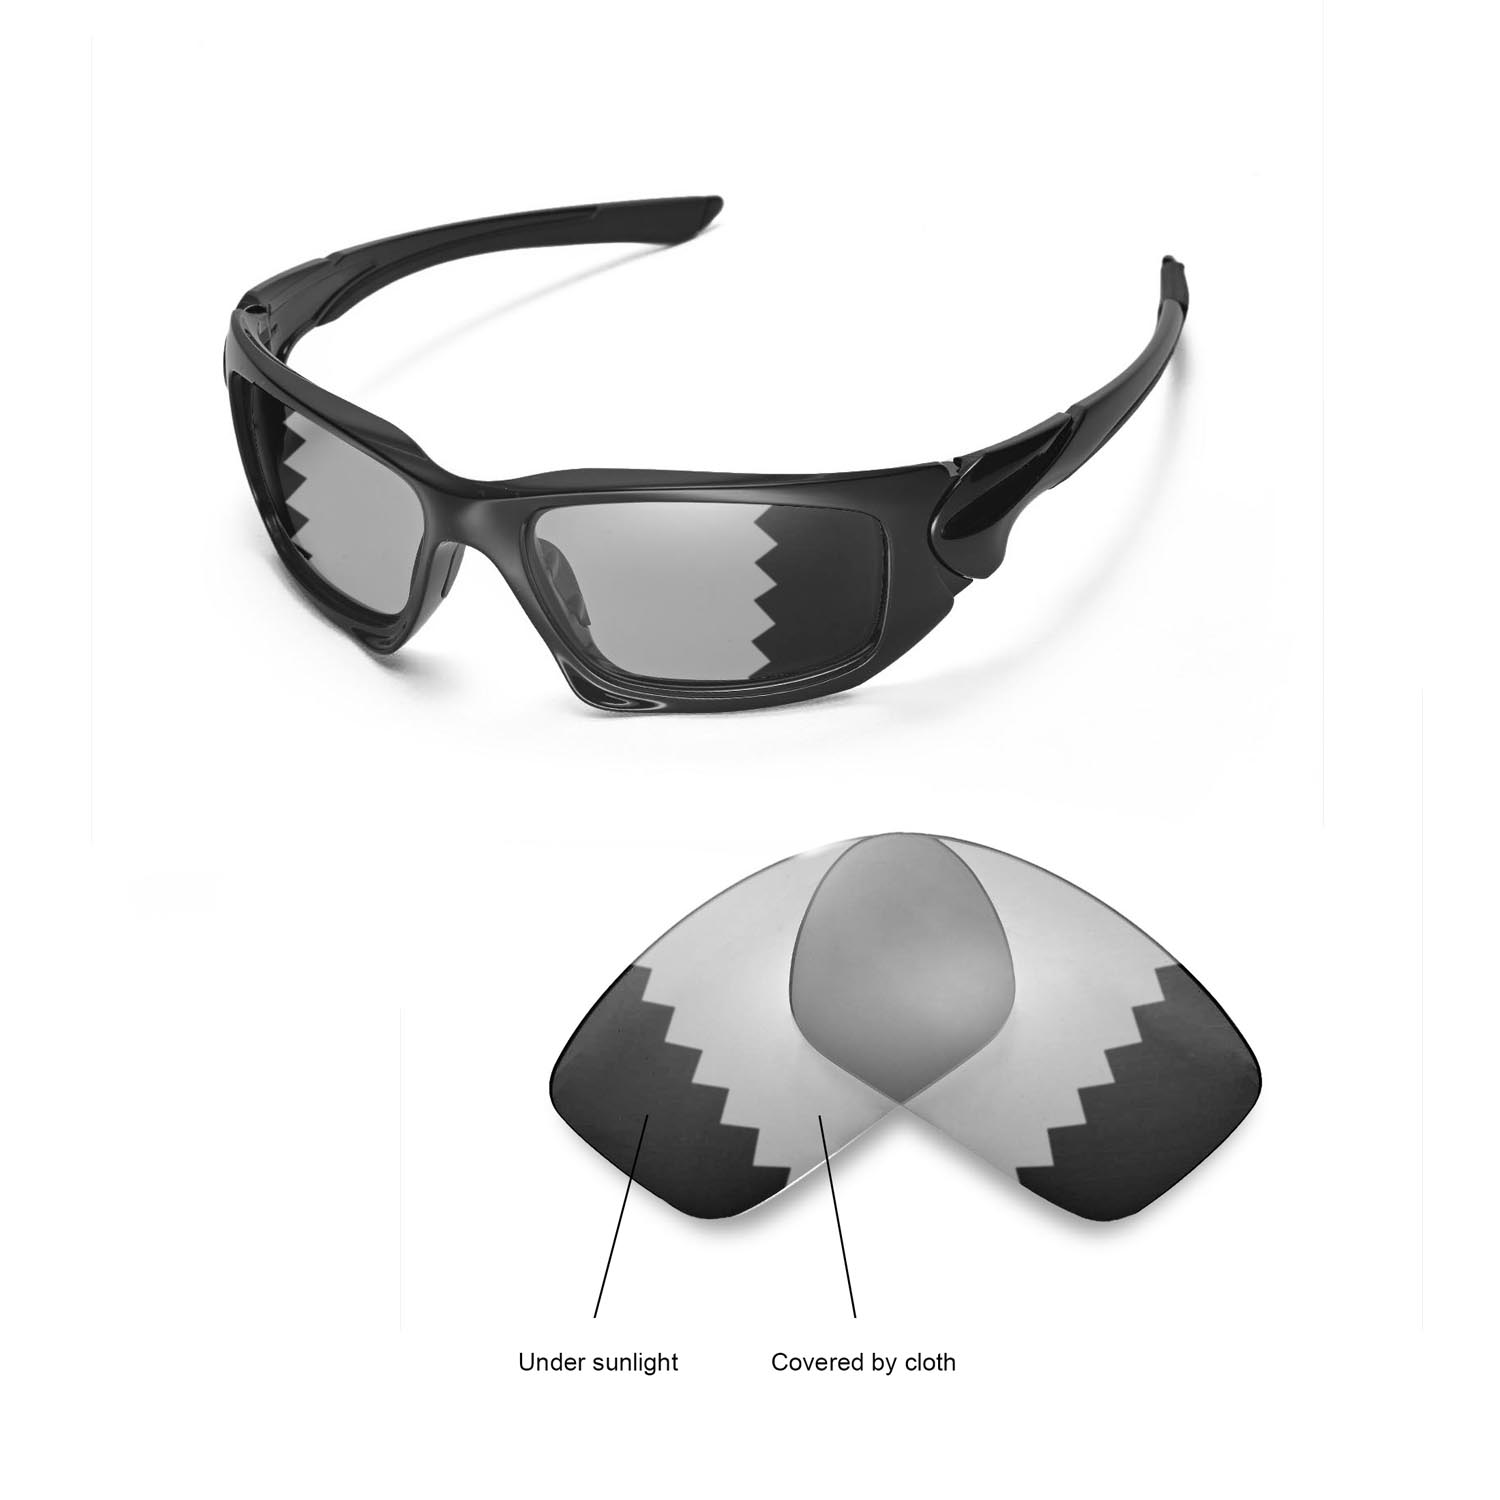 836b9f5d8251d Walleva Polarized Transition Replacement Lenses For Oakley Scalpel ...